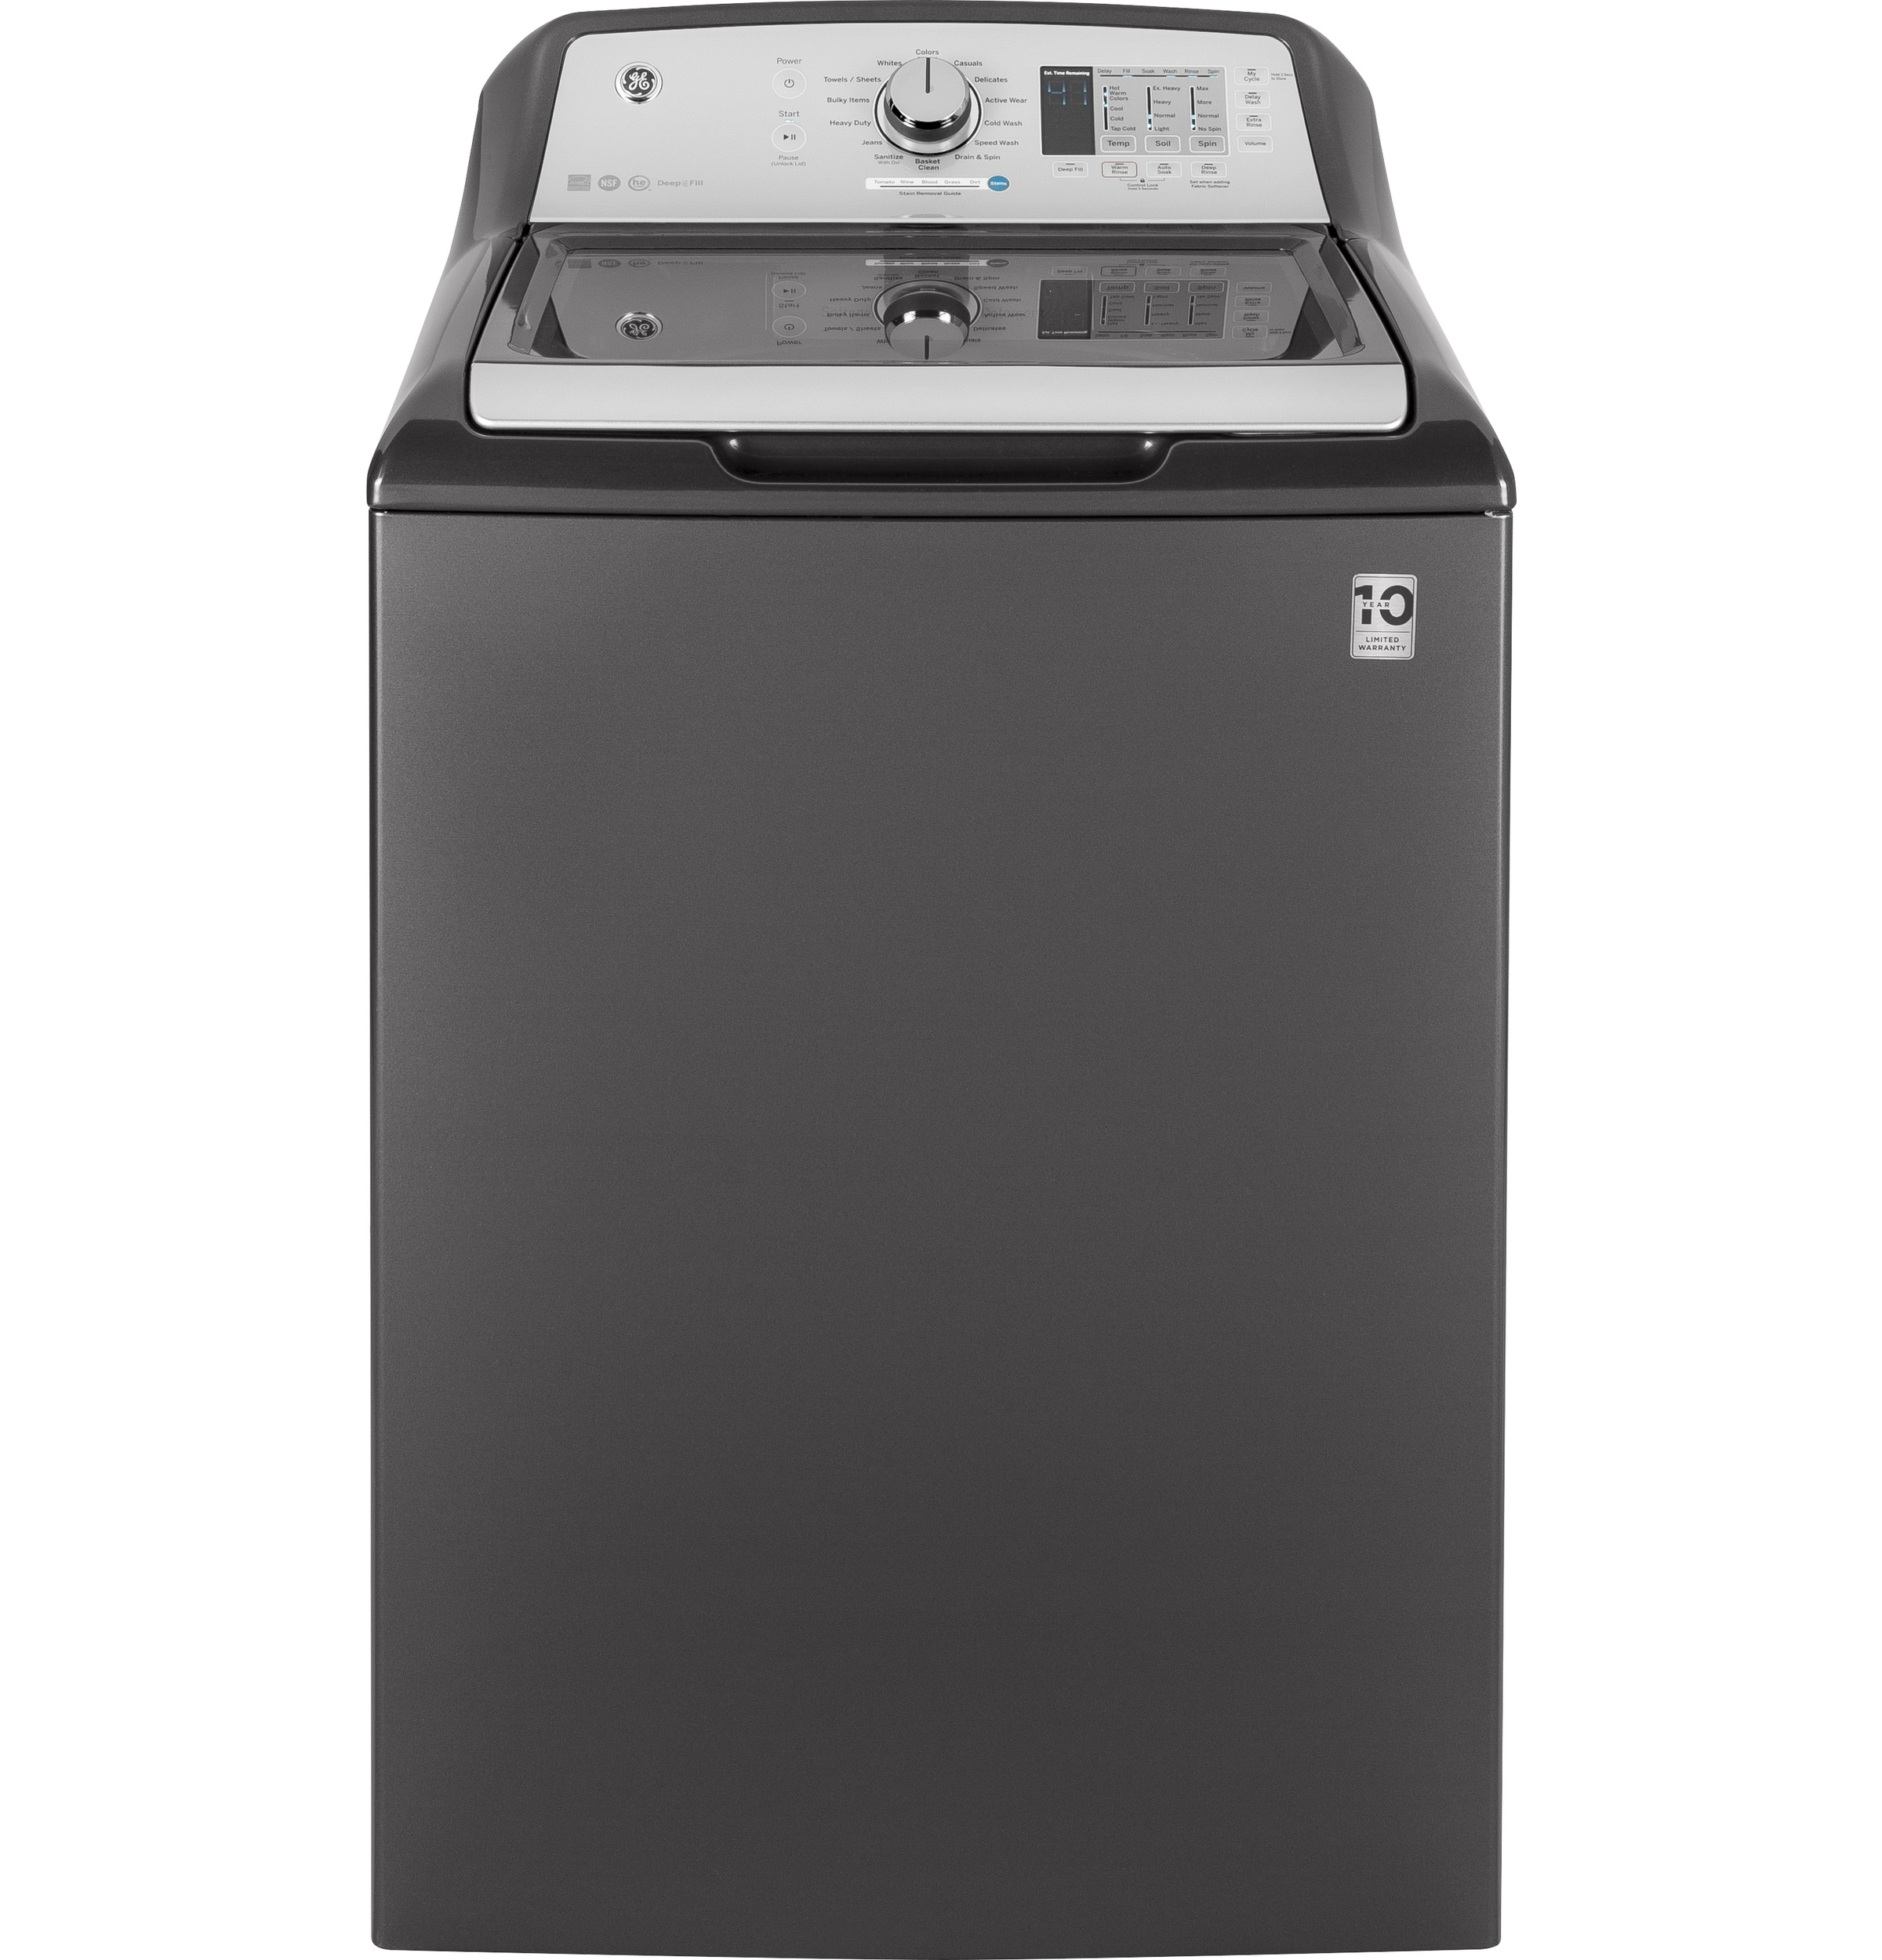 Model: GTW680BPLDG | GE® 4.6  cu. ft. Capacity Washer with Stainless Steel Basket